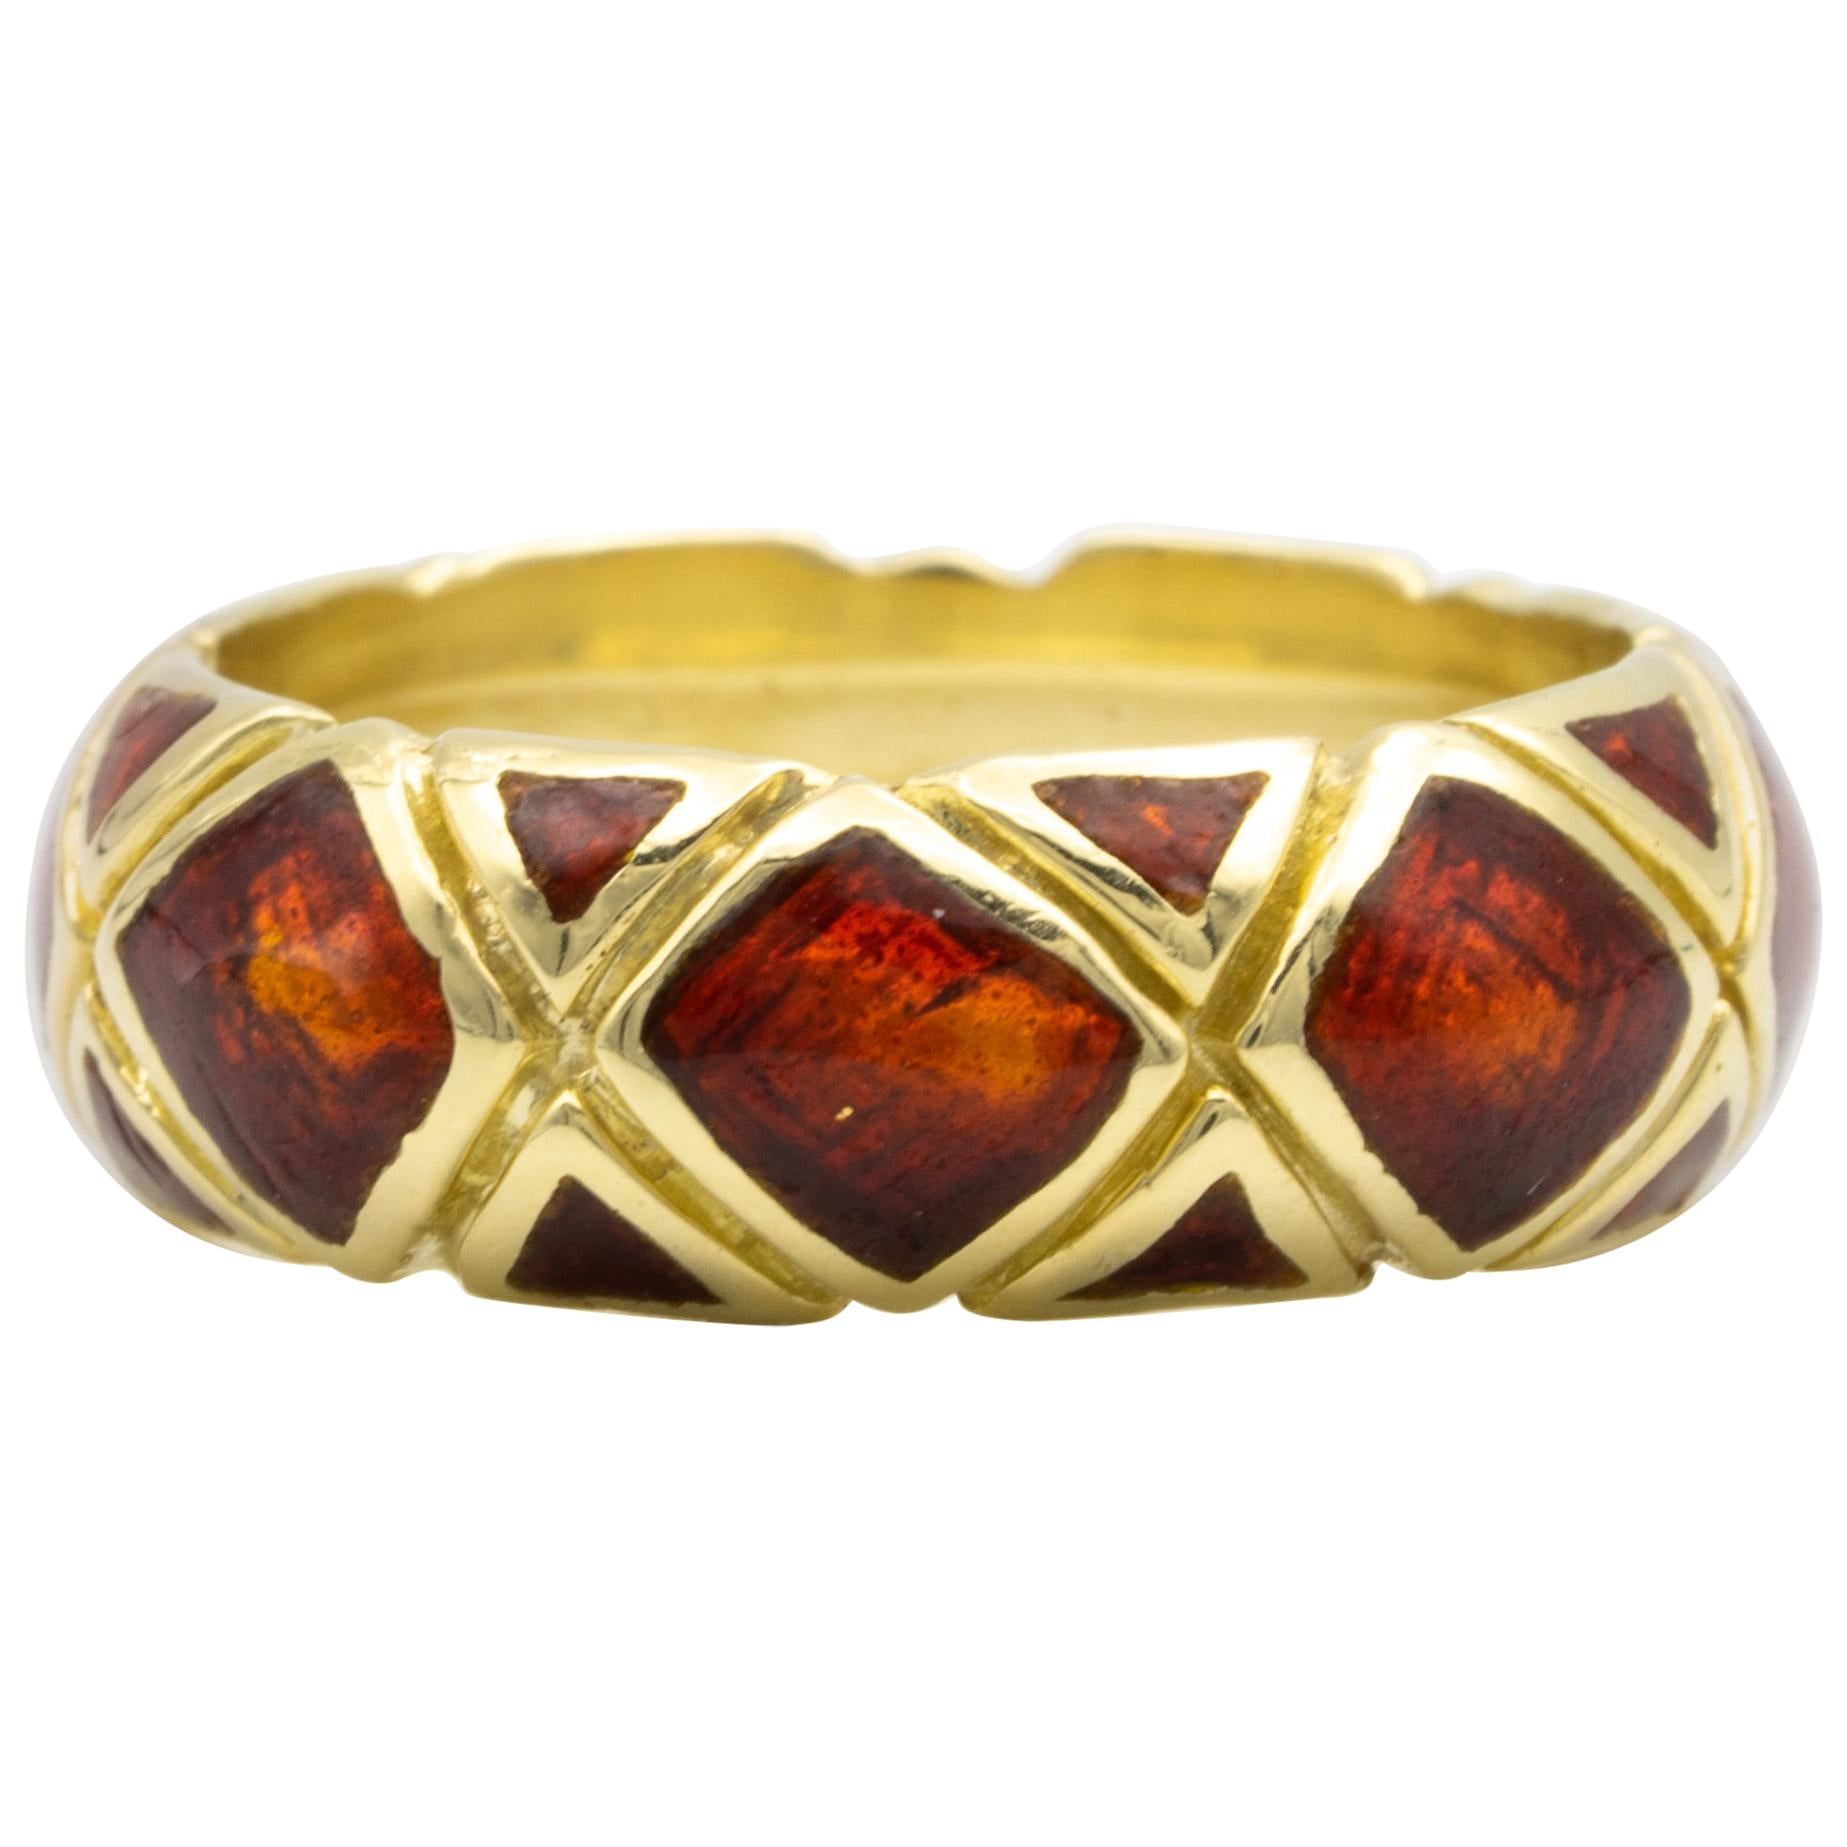 Tiffany & Co. 18K Yellow Gold and Red Enamel Band Ring, circa 1960s